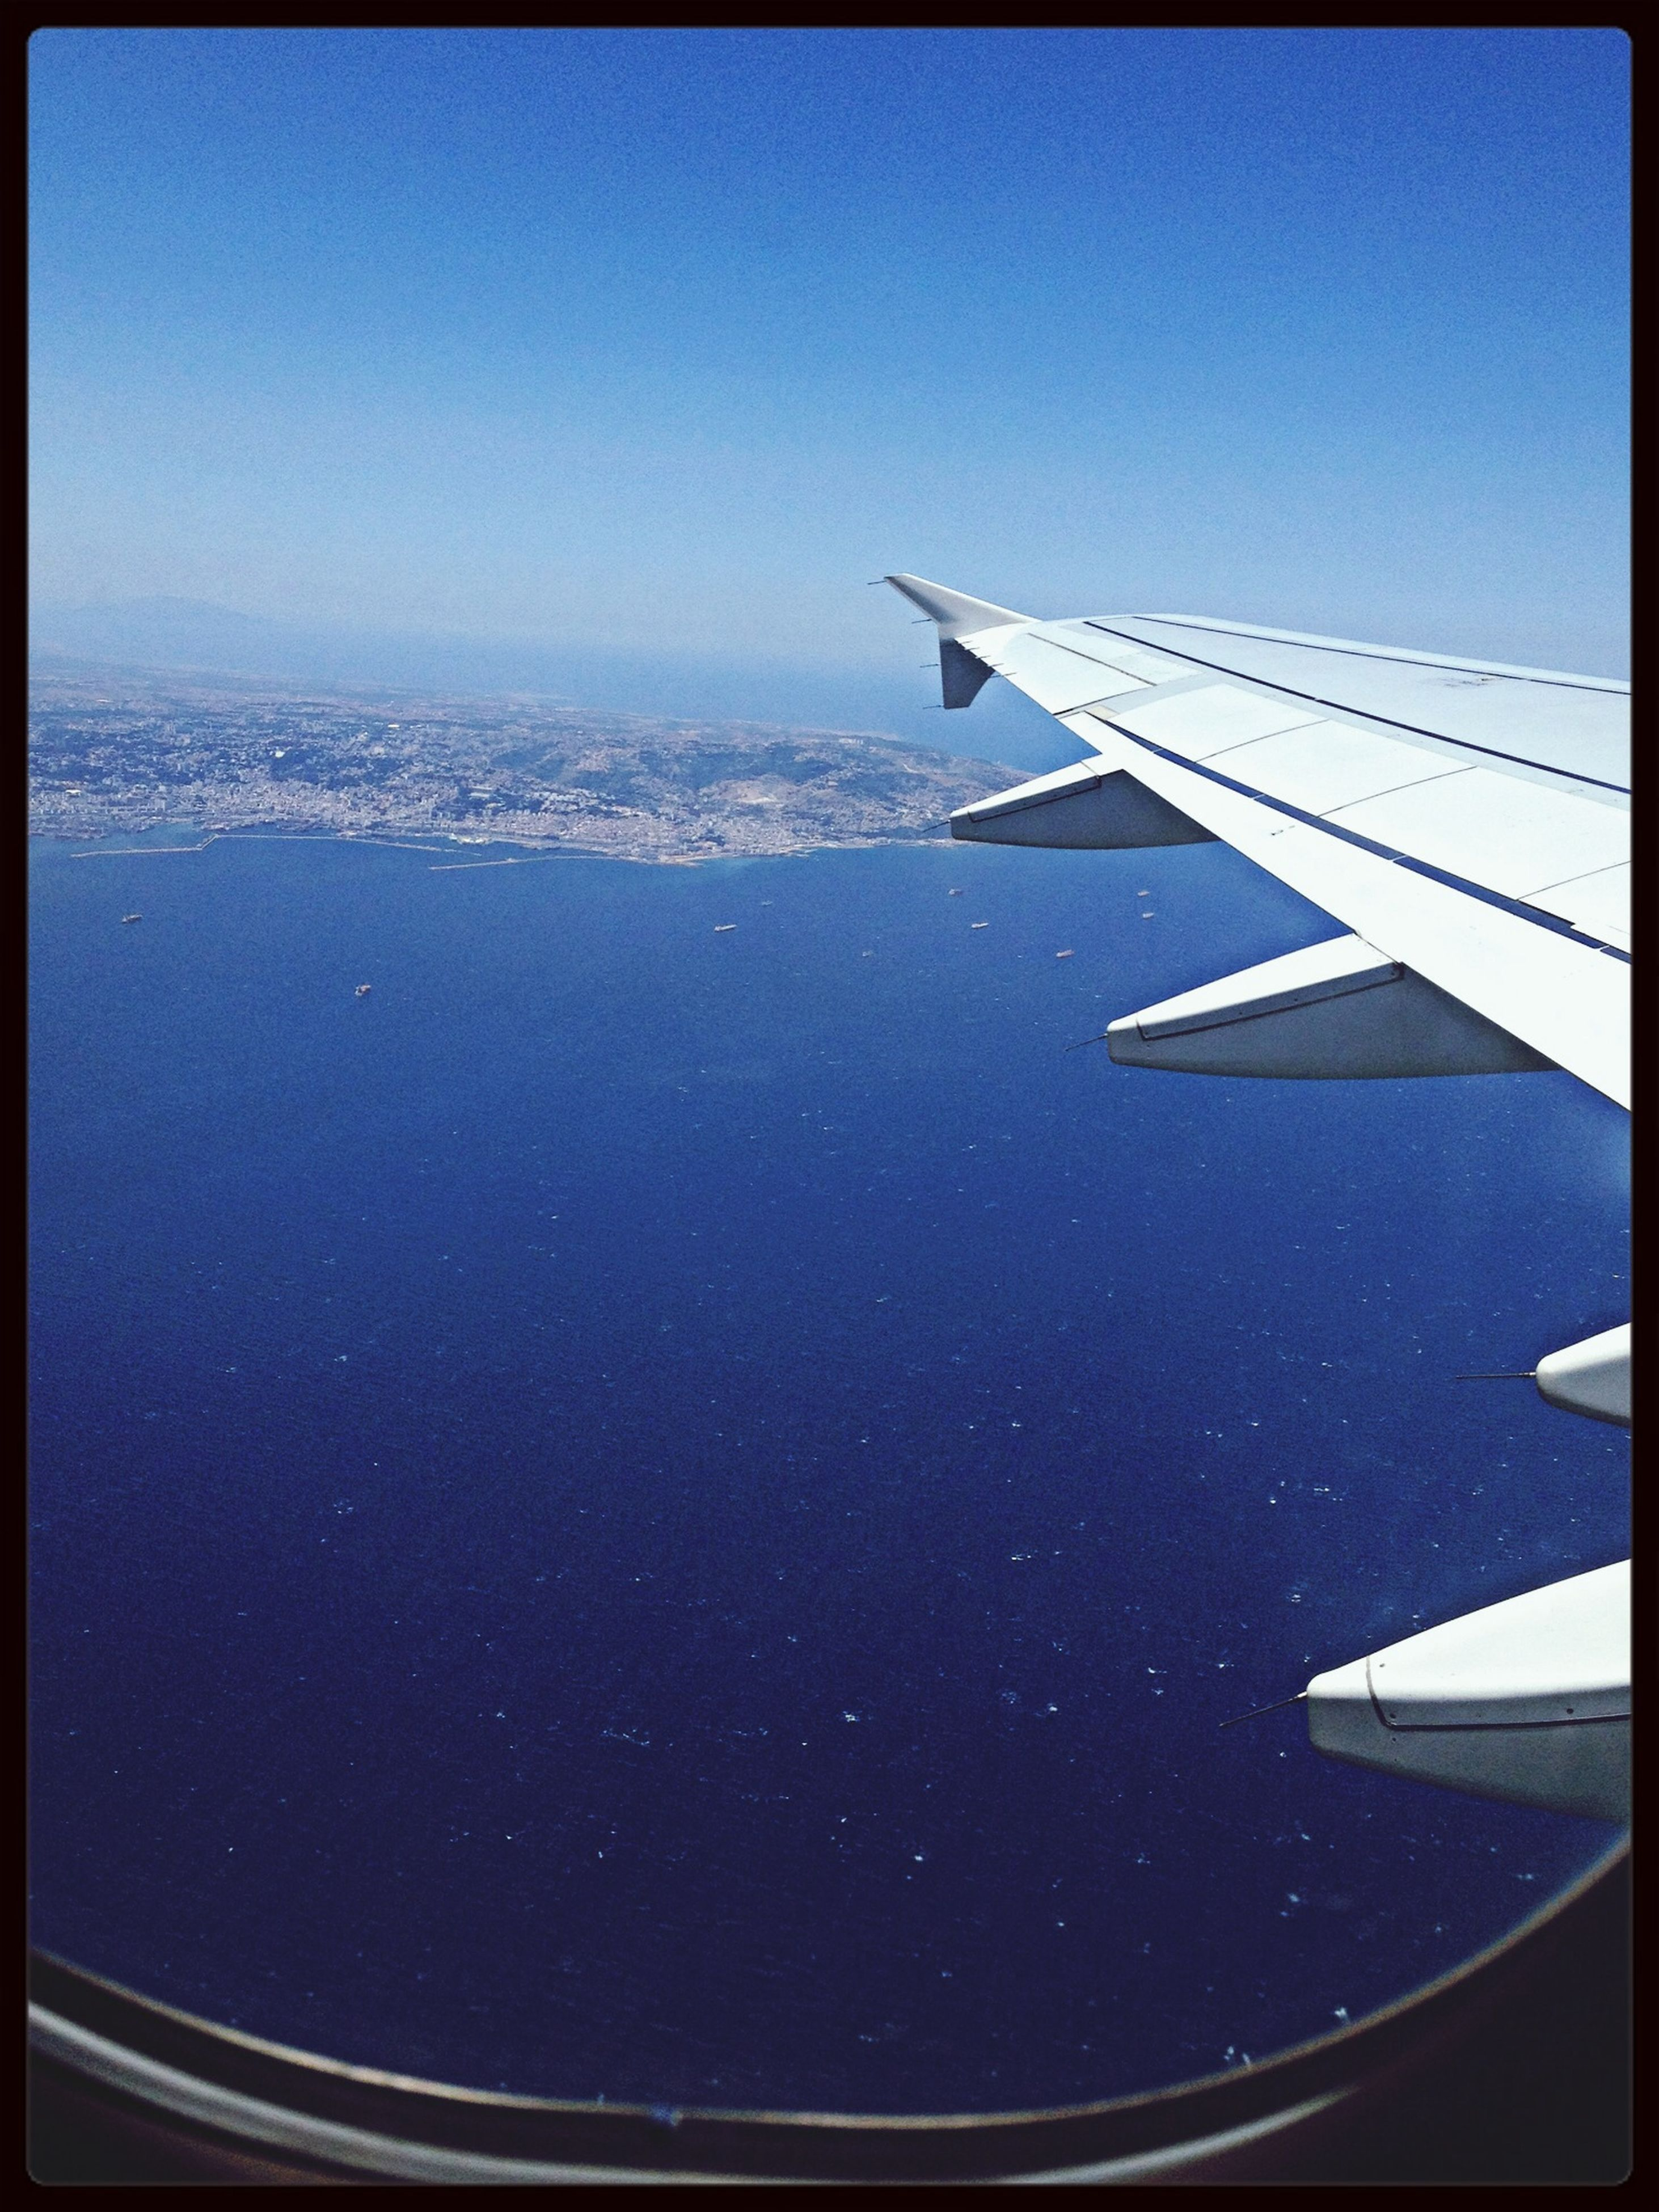 airplane, aircraft wing, air vehicle, flying, transportation, mode of transport, aerial view, part of, cropped, blue, travel, journey, airplane wing, mid-air, sky, aeroplane, clear sky, on the move, scenics, sea